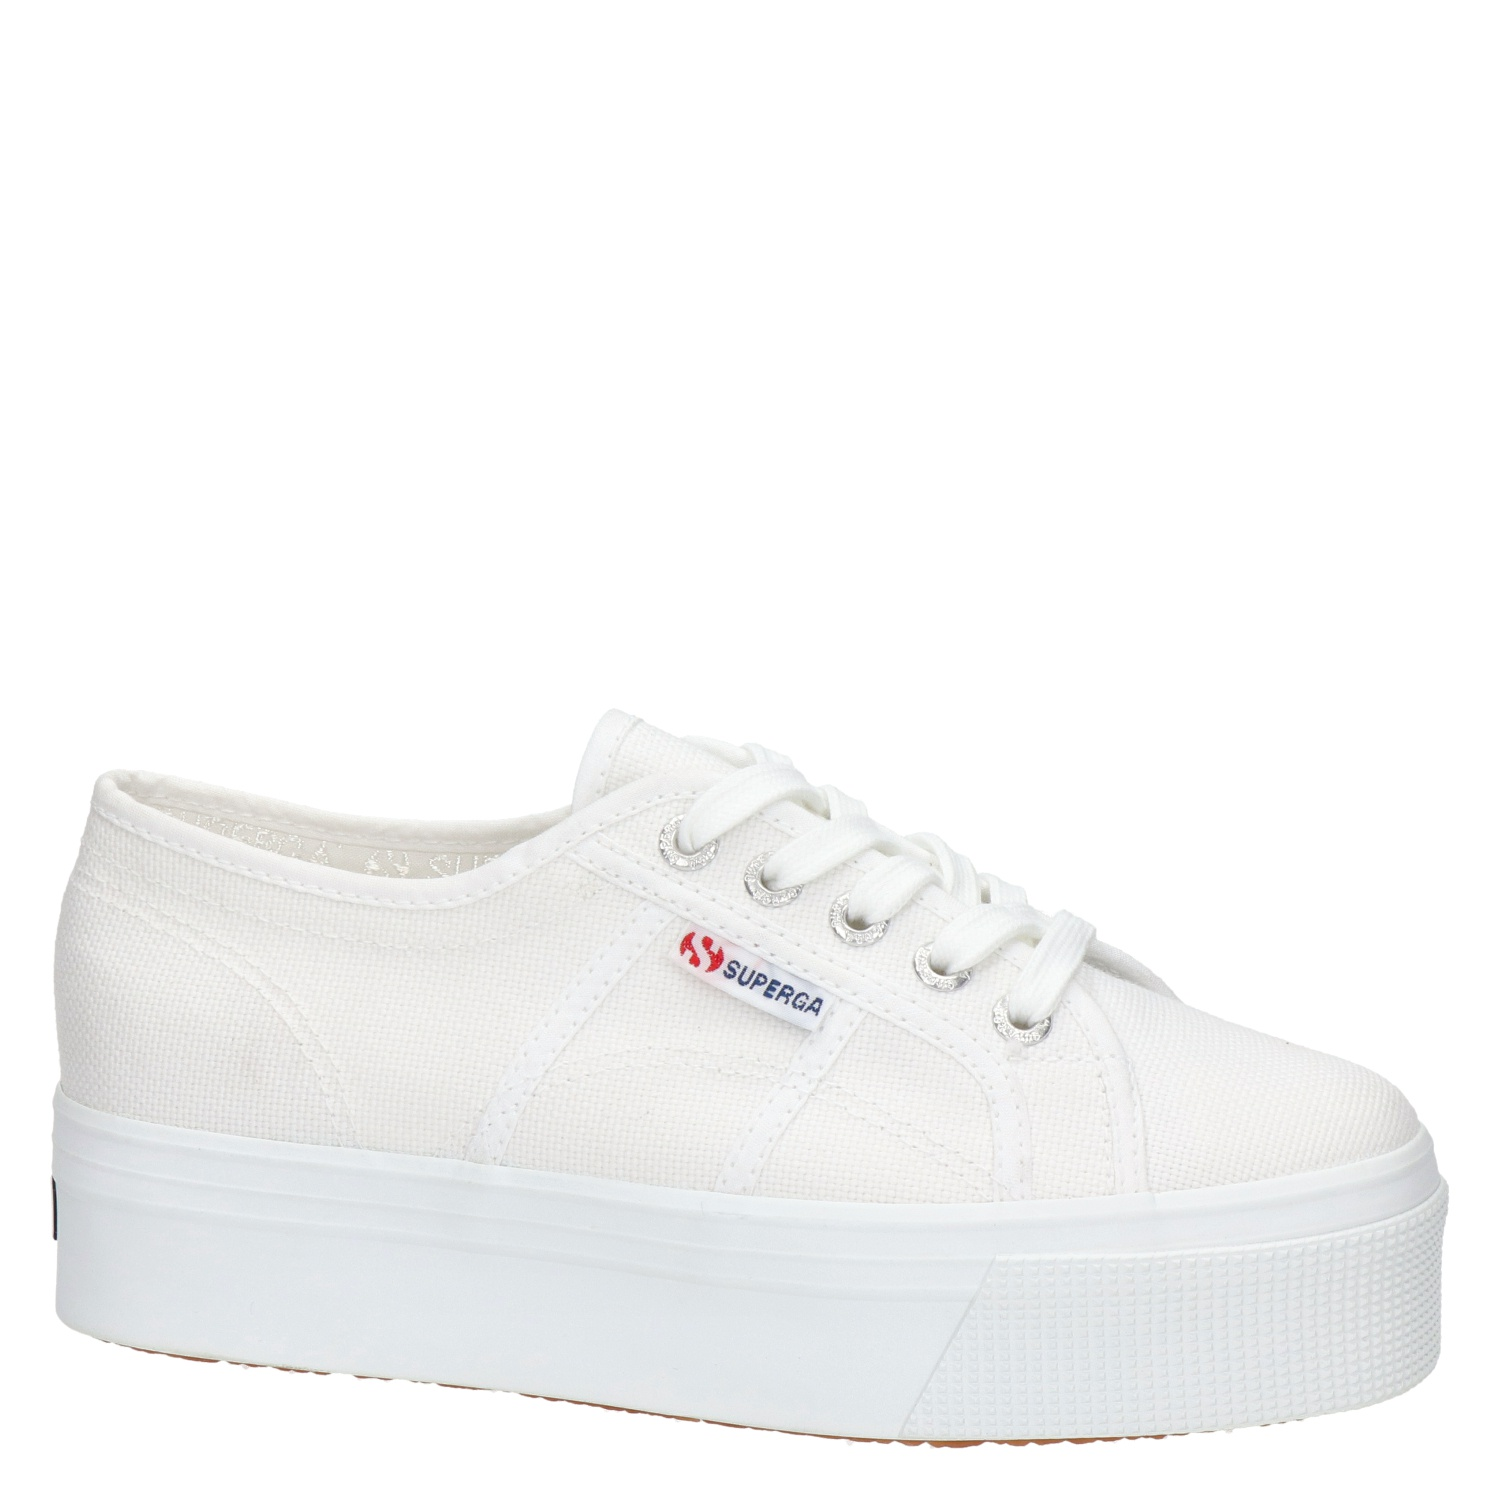 Superga damessneaker wit